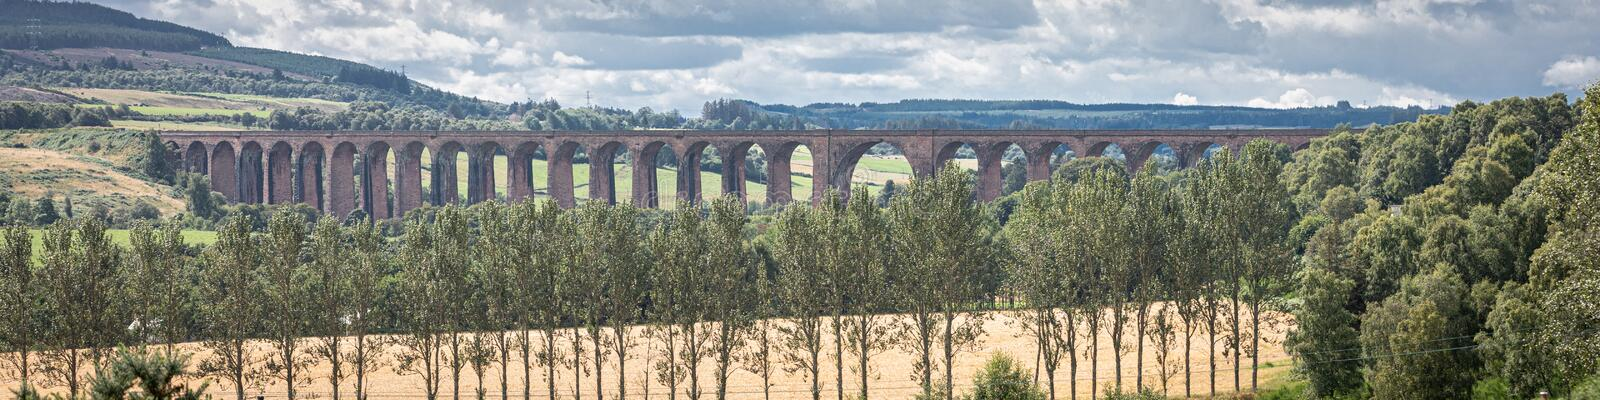 The Glenfinnan railway viaduct in Scotland royalty free stock images